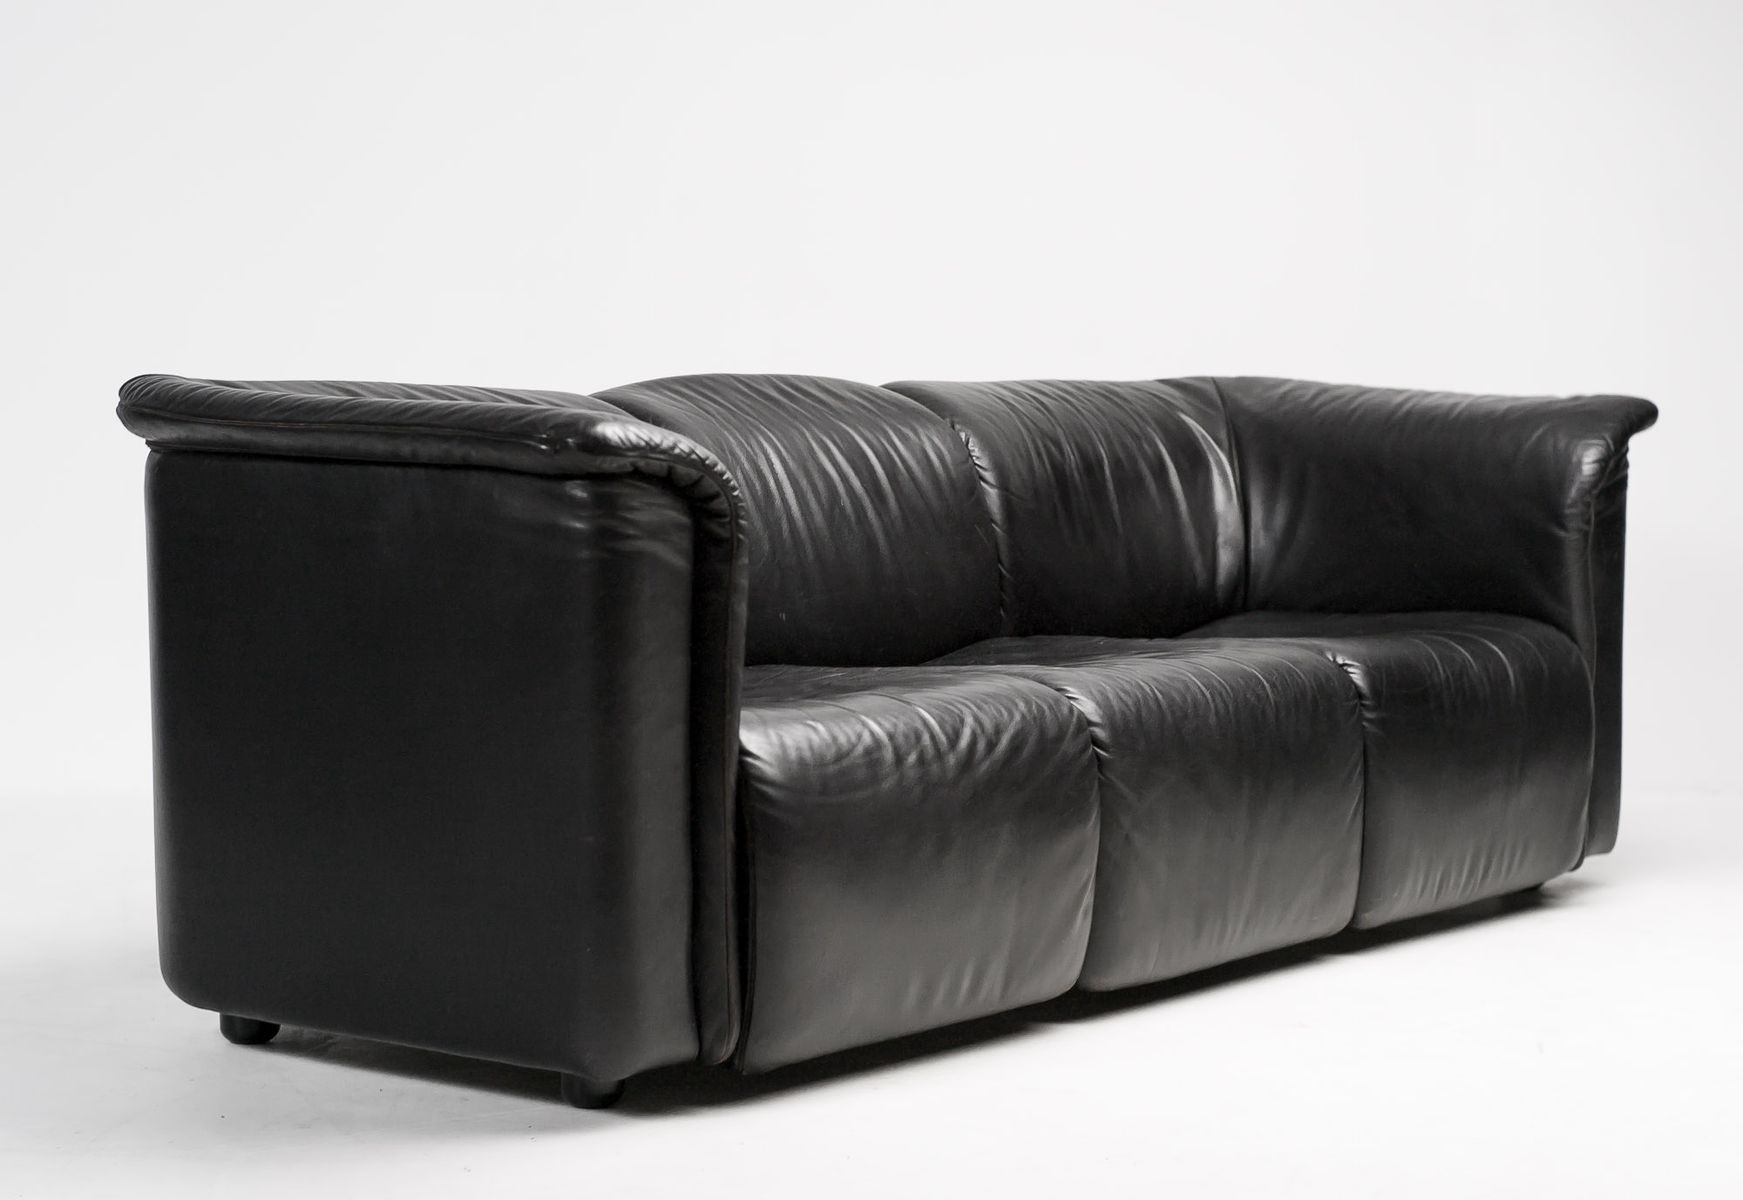 hochbarett black three seater sofa from wittmann moebel. Black Bedroom Furniture Sets. Home Design Ideas